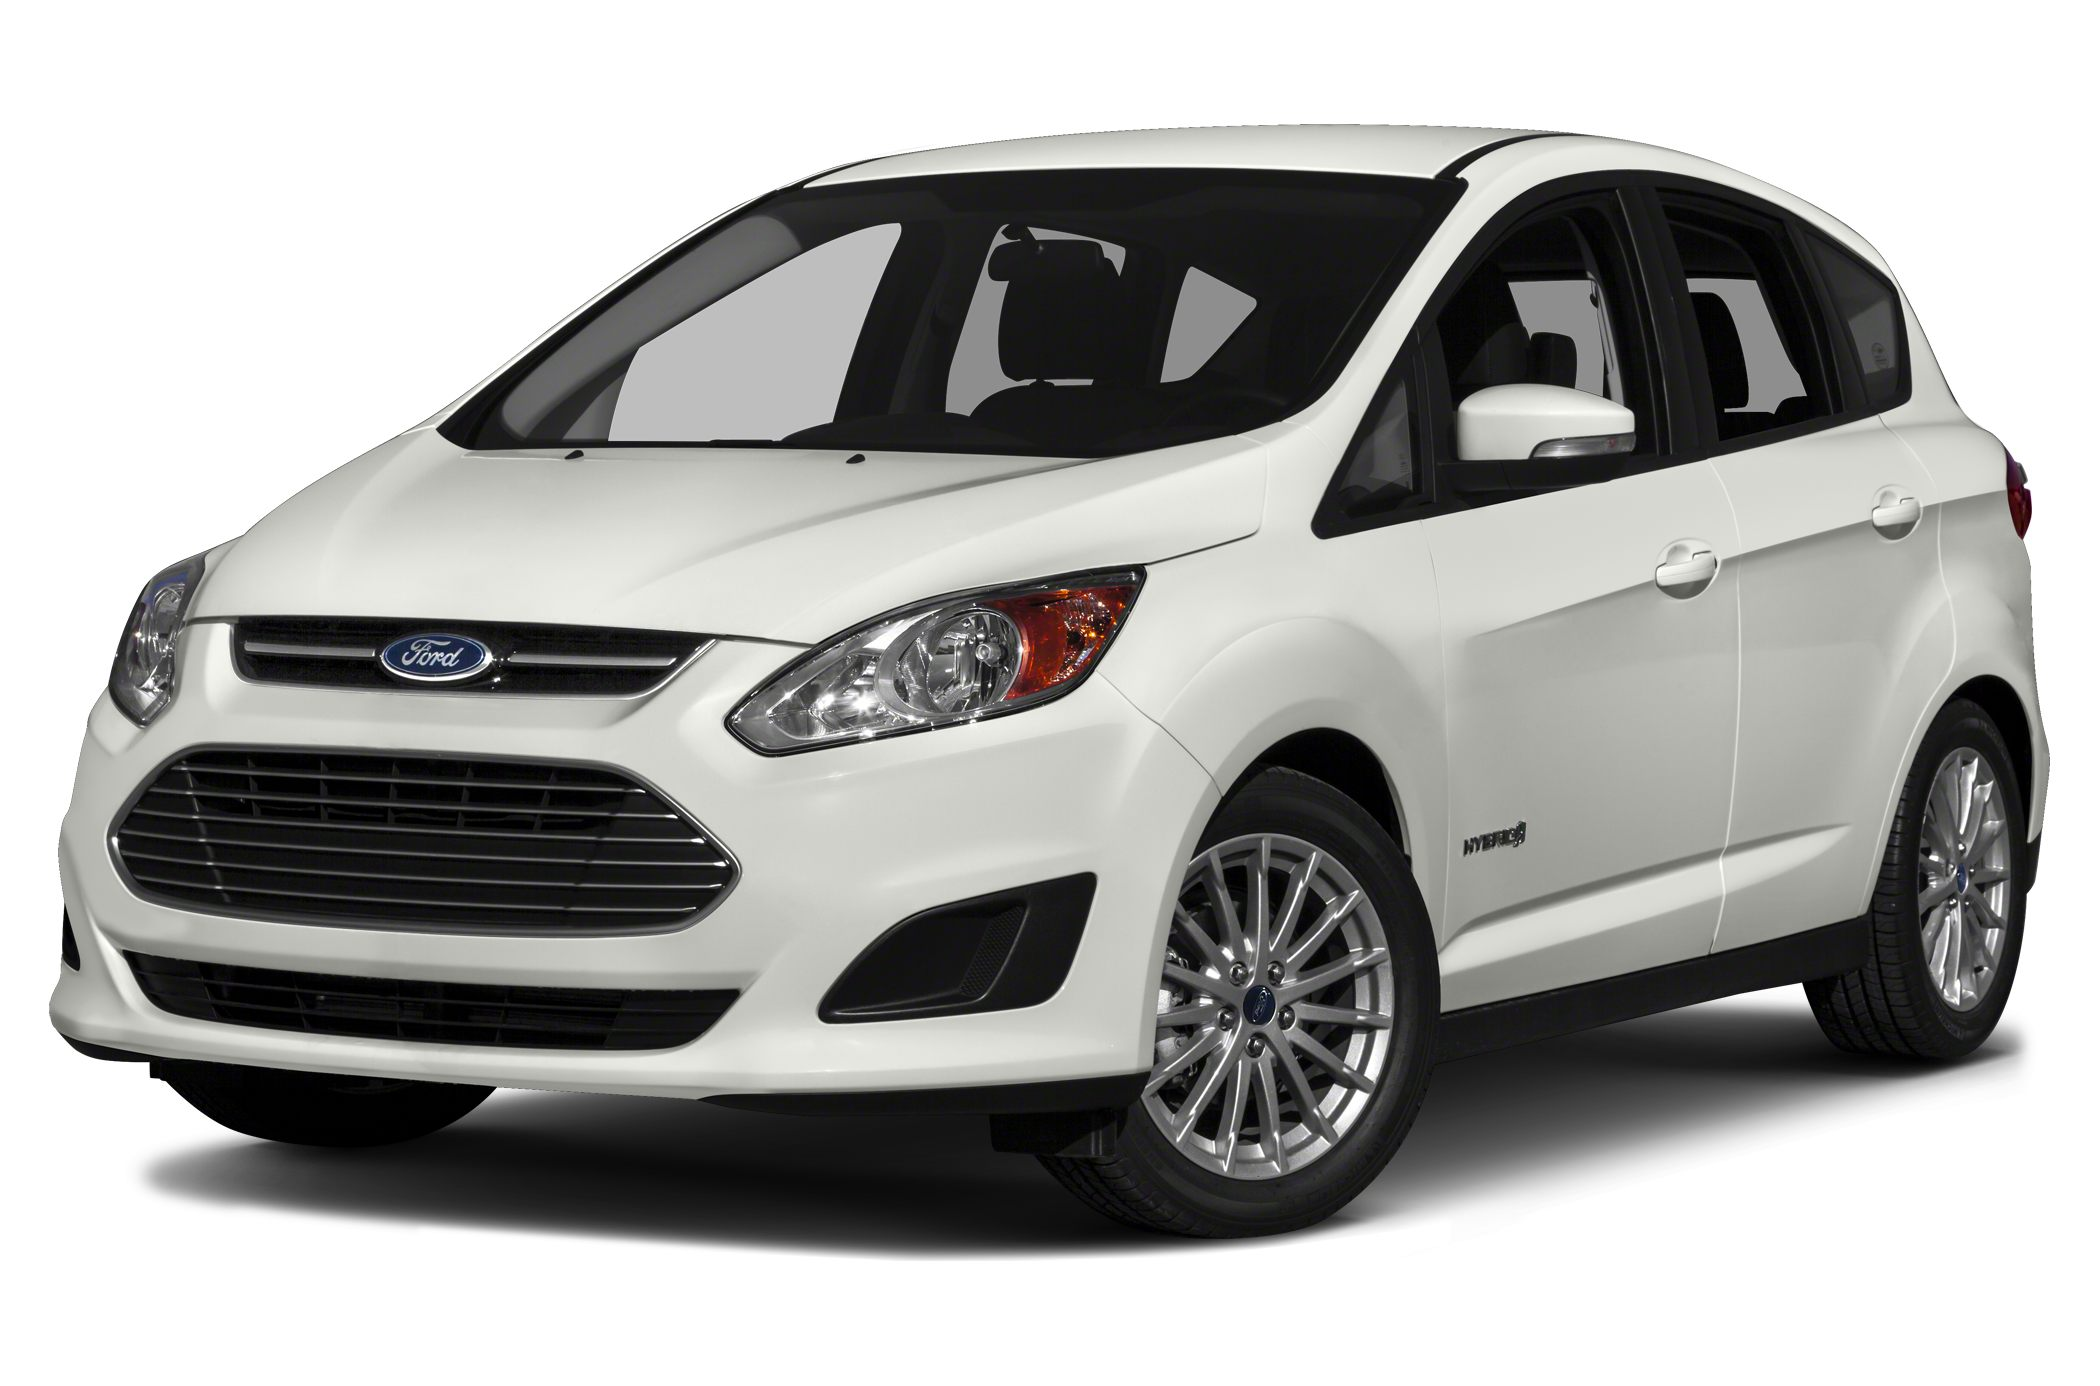 2015 Ford C-Max Hybrid SE Hatchback for sale in Kalkaska for $25,642 with 4 miles